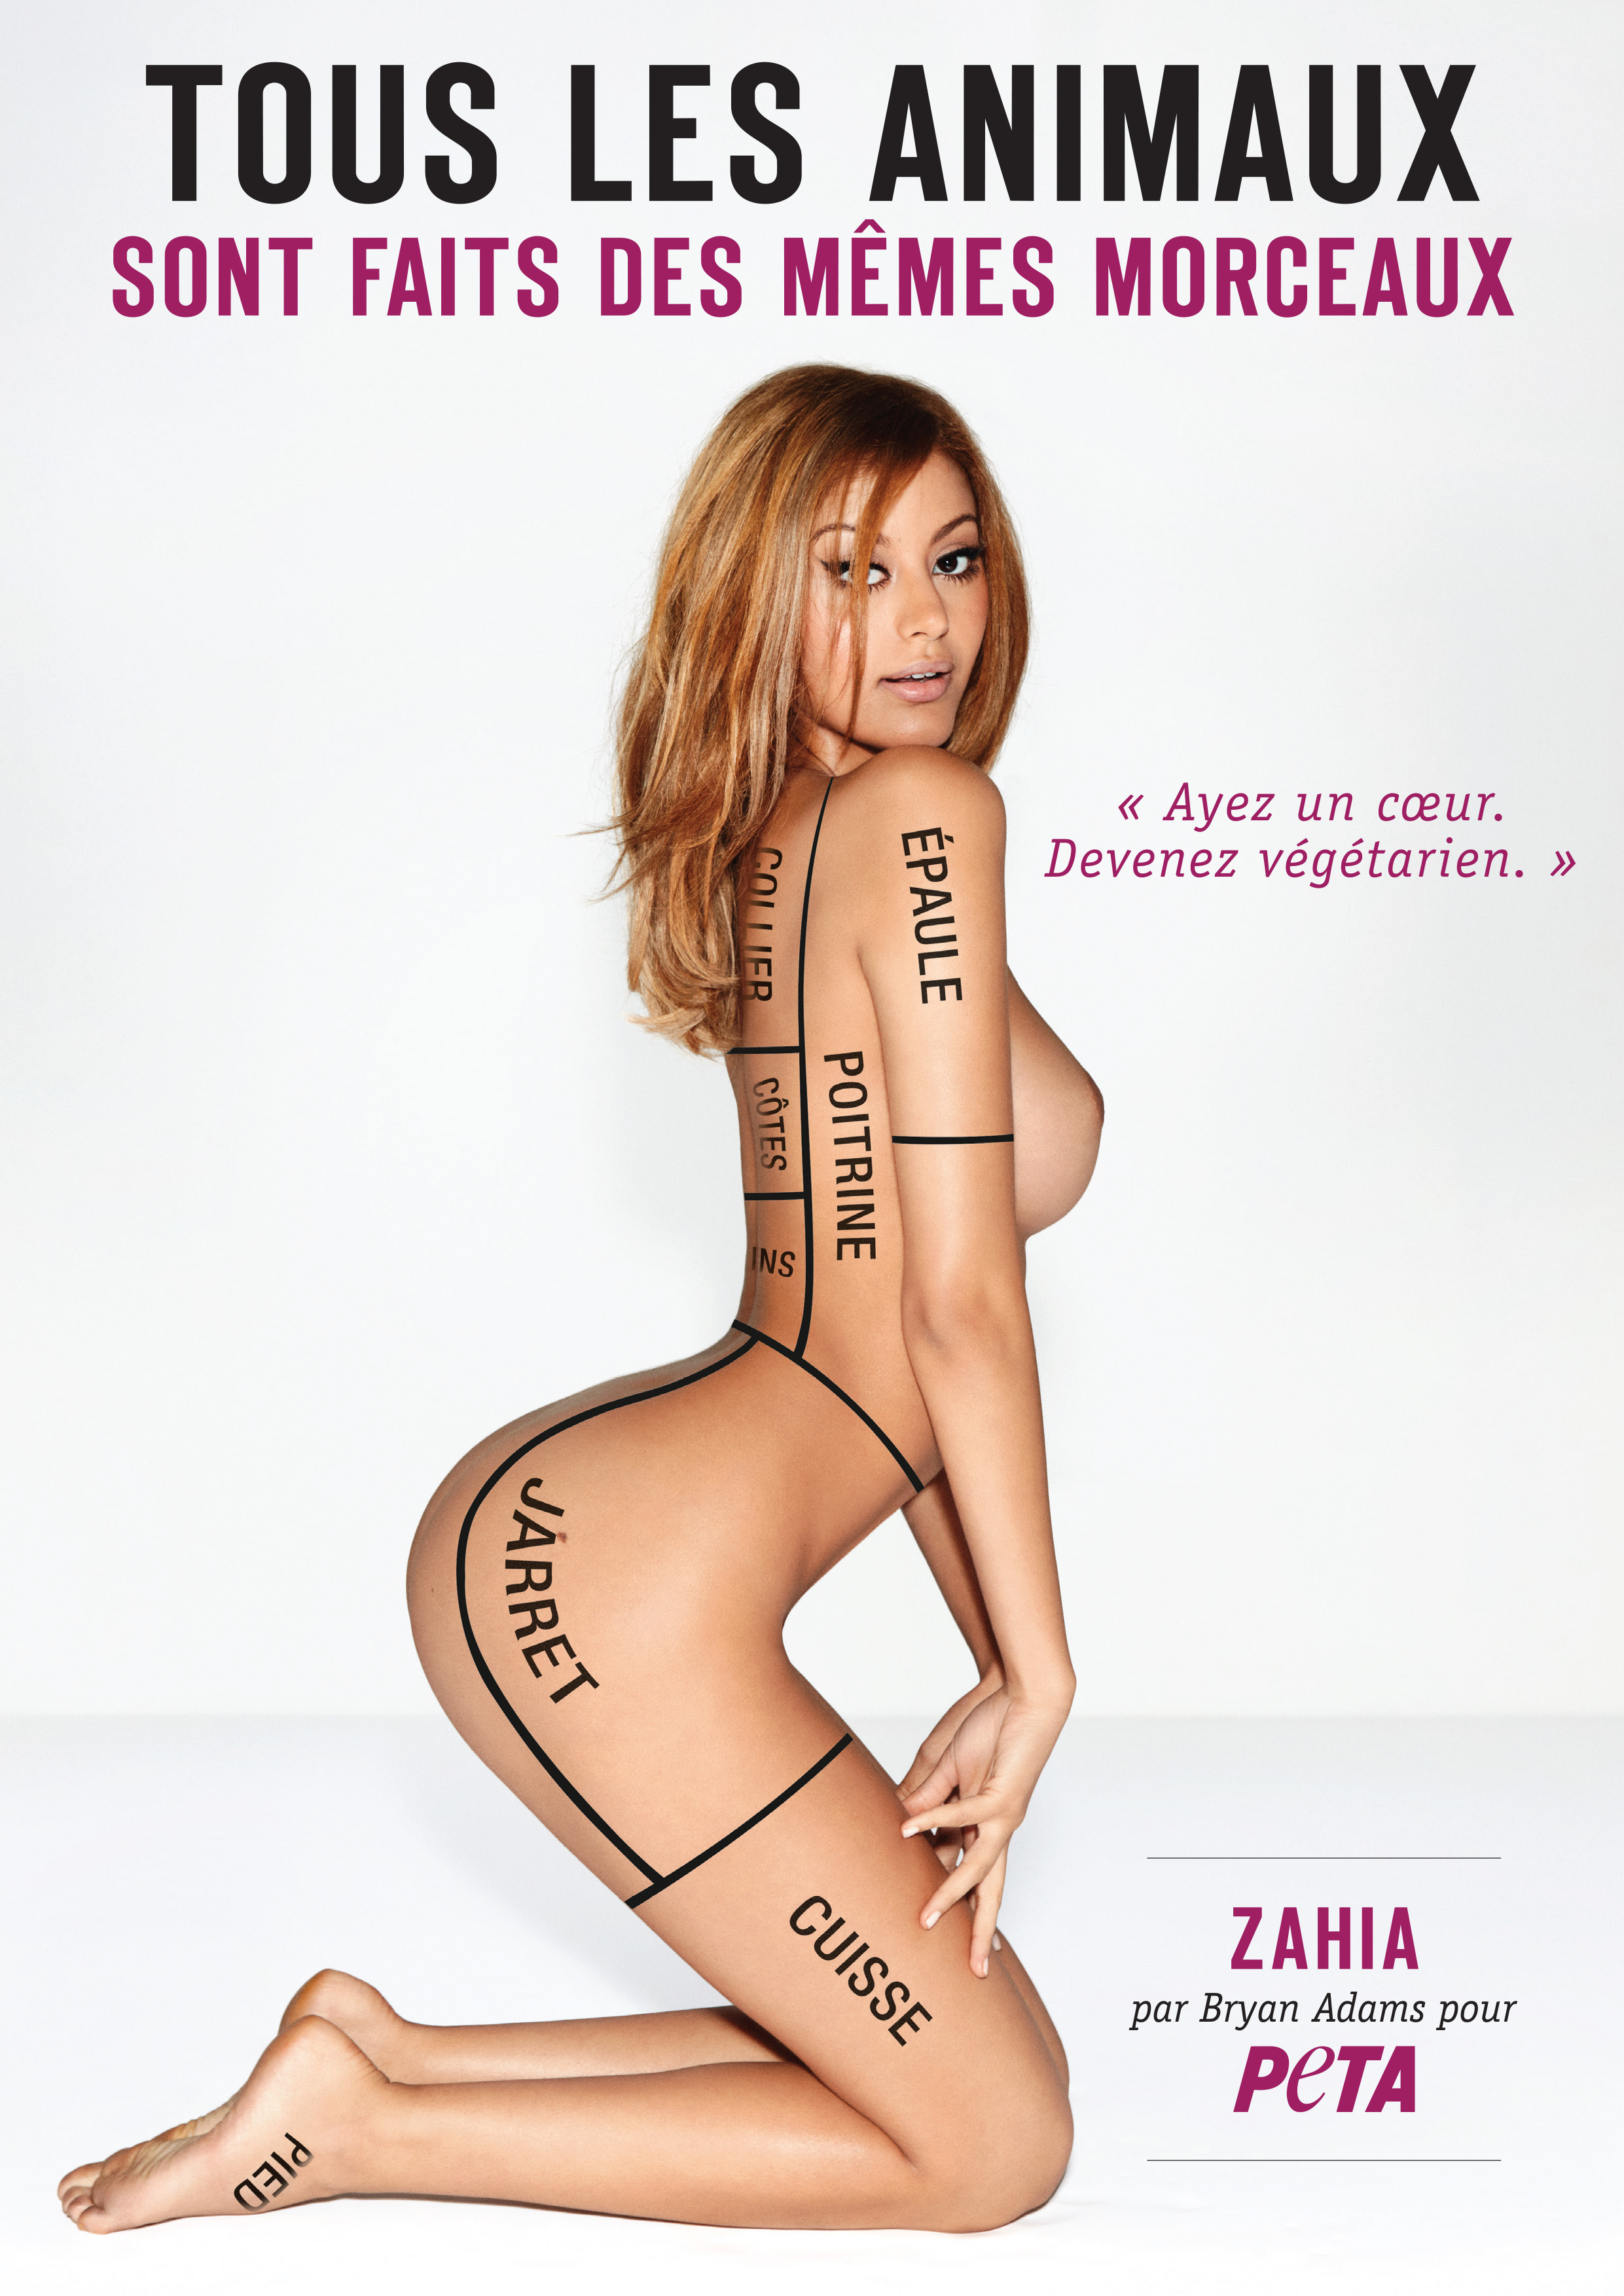 zahia_body parts_FRENCH_FIN300